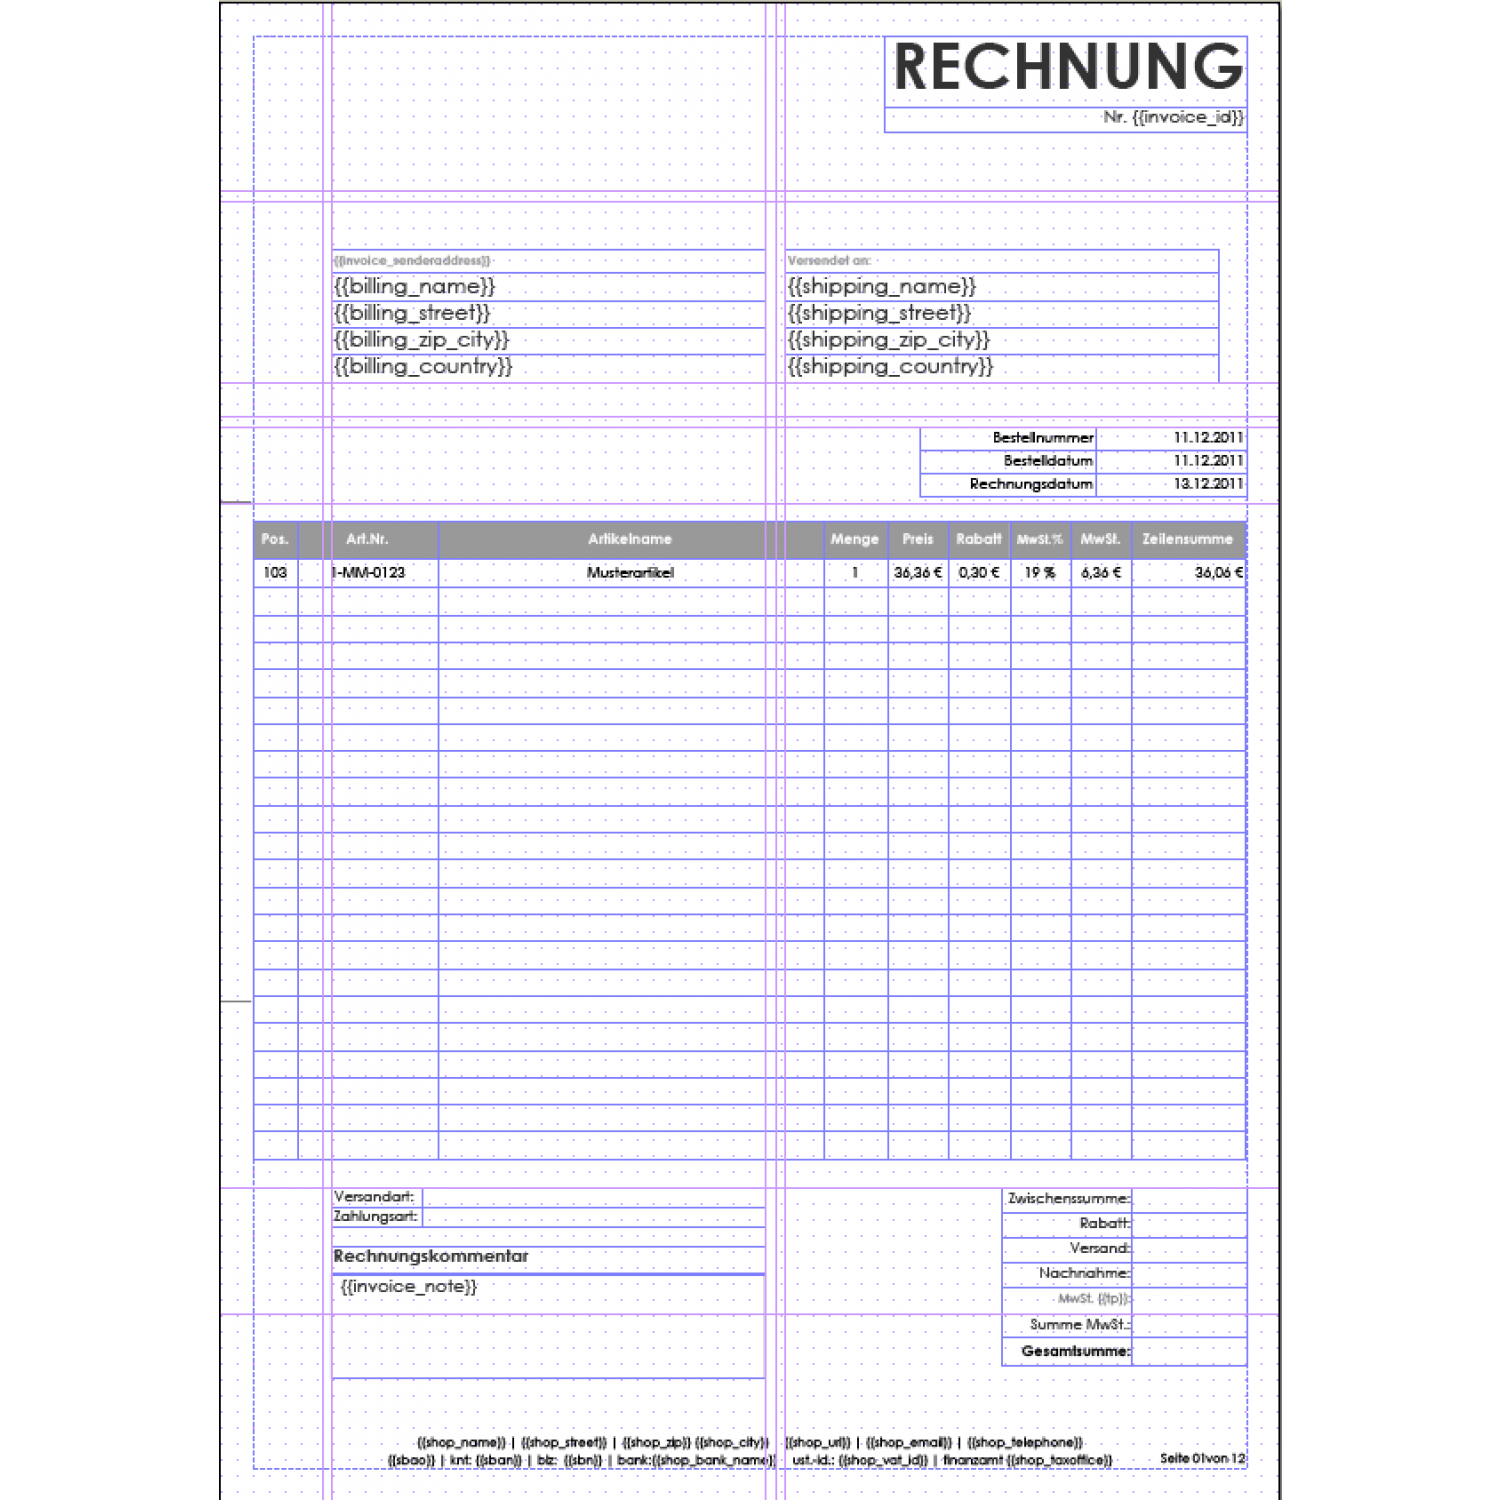 invoice pdf pro windowinvoice invoice template german windowinvoice box german middot windowinvoice example invoice middot windowinvoice layout einseitige rechnung